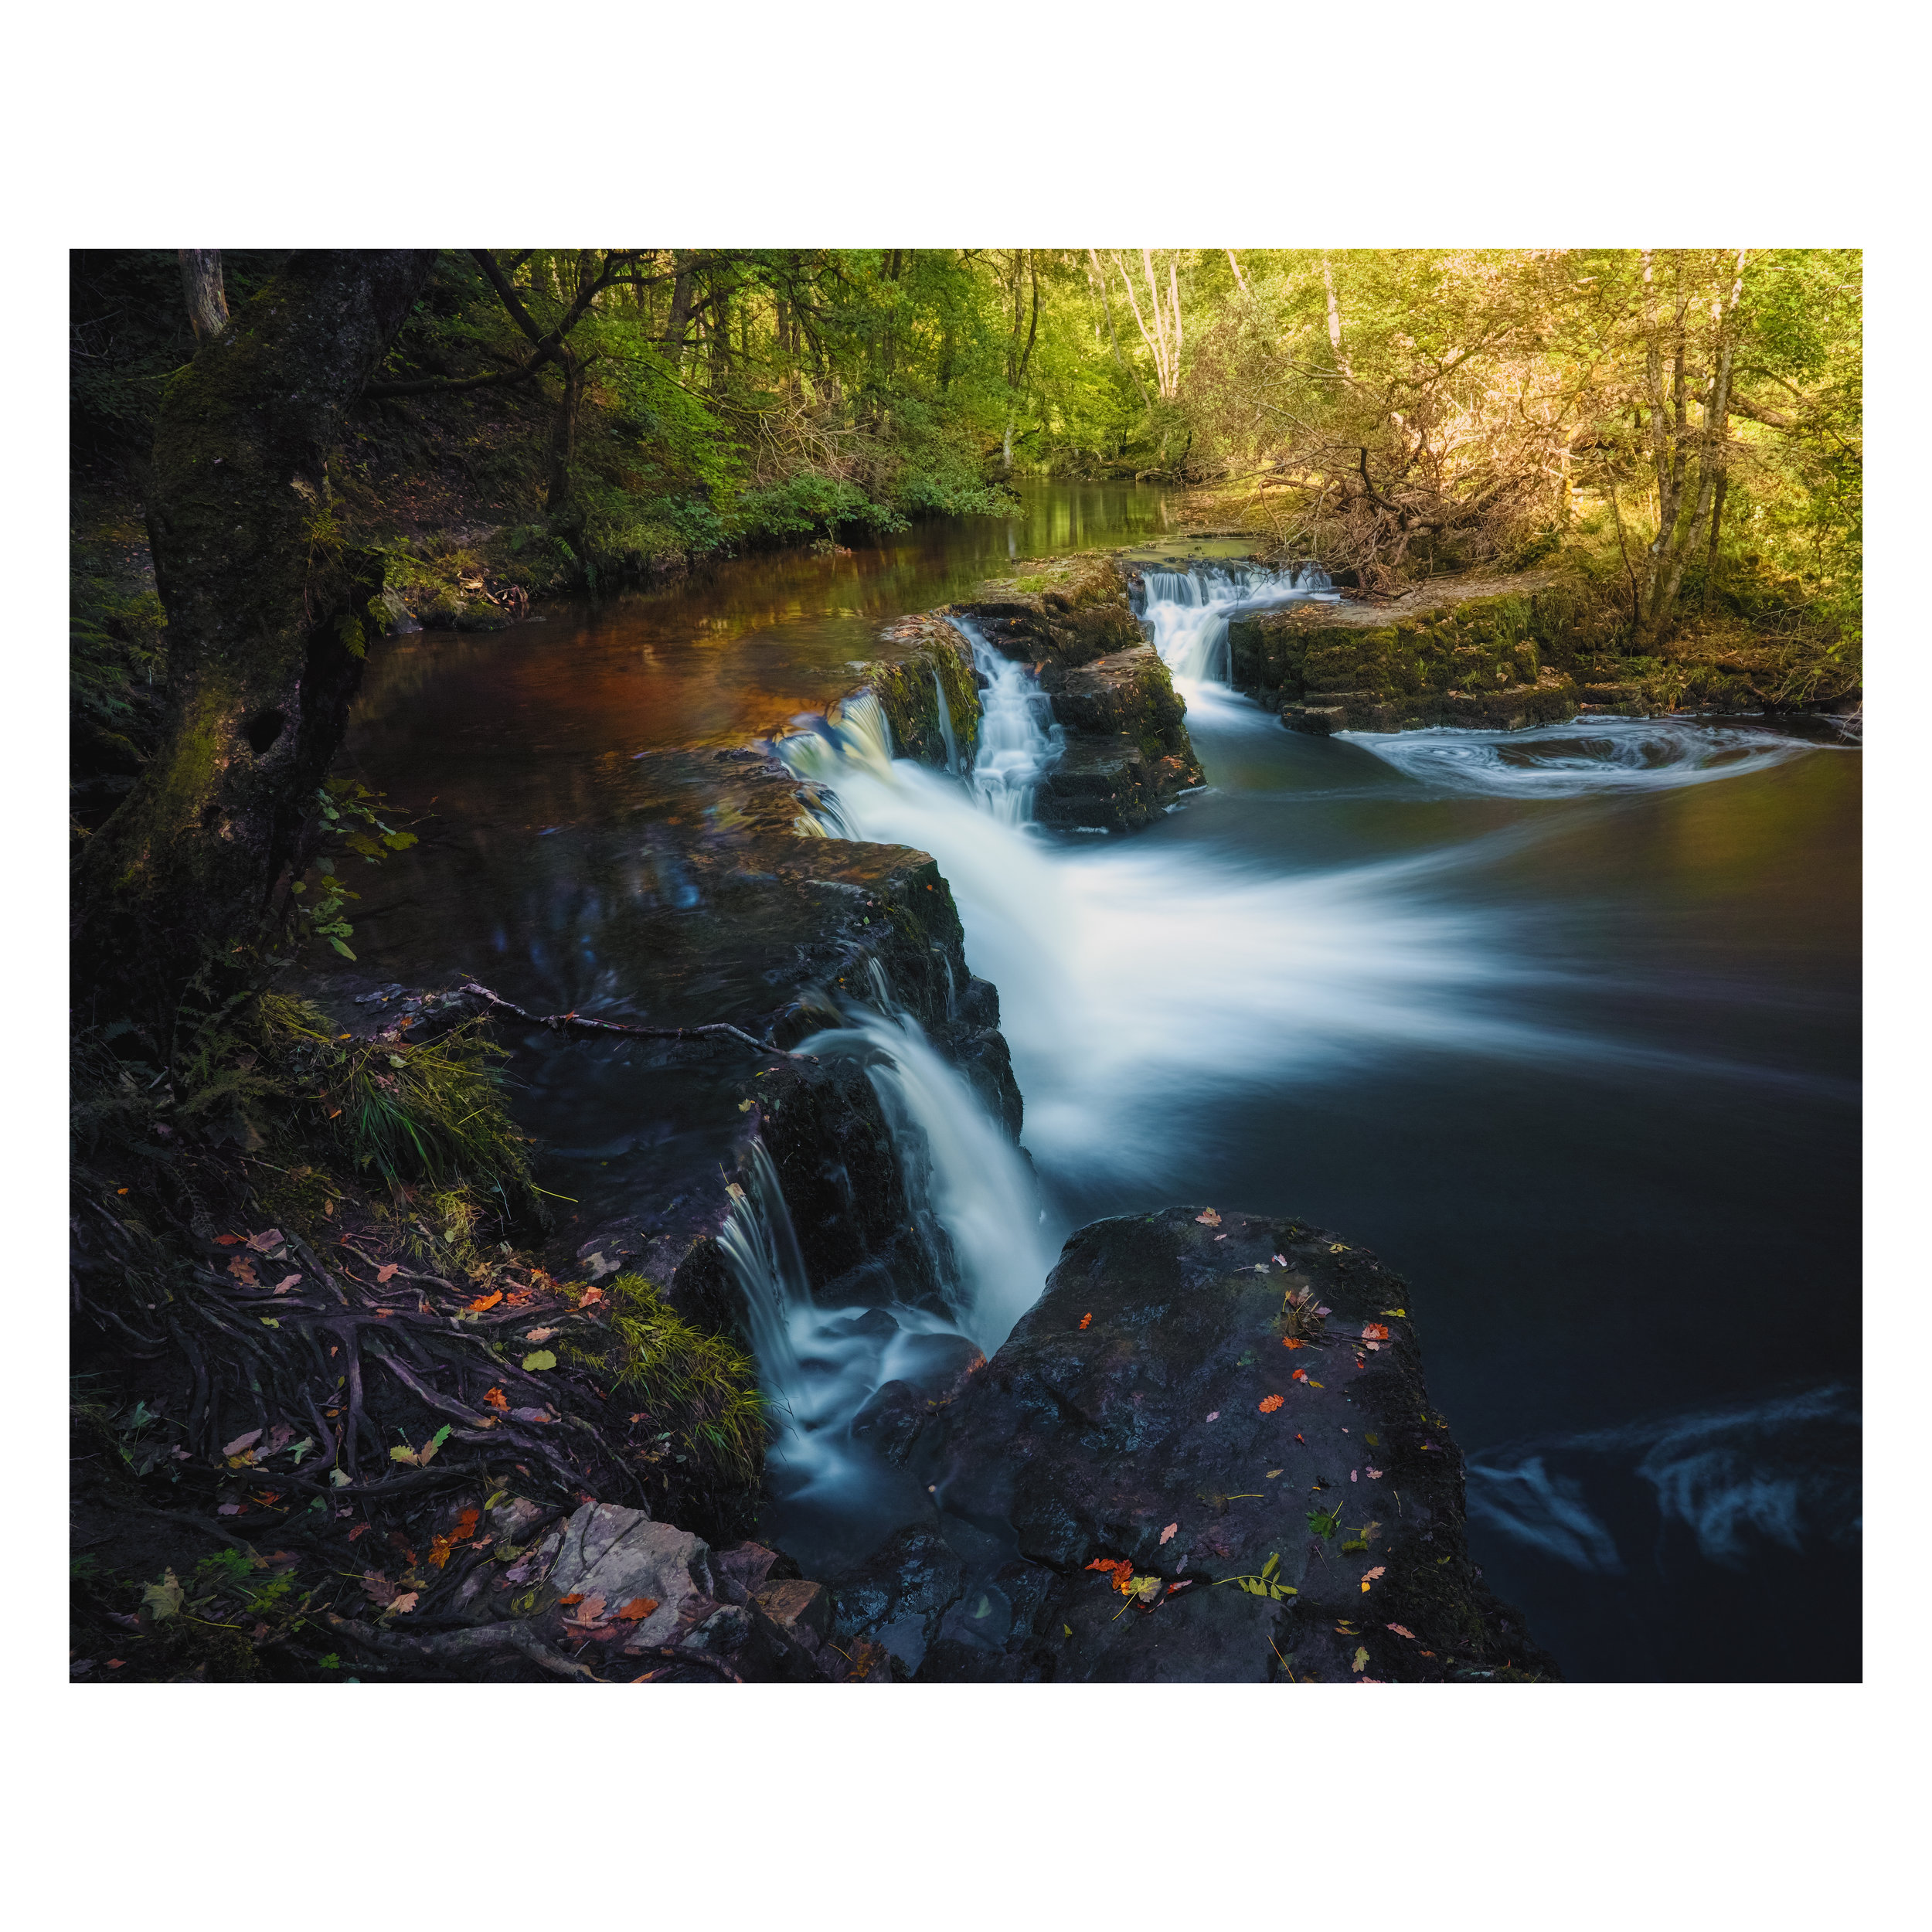 south_wales-brecon_beacons-fullmatte-09.jpg